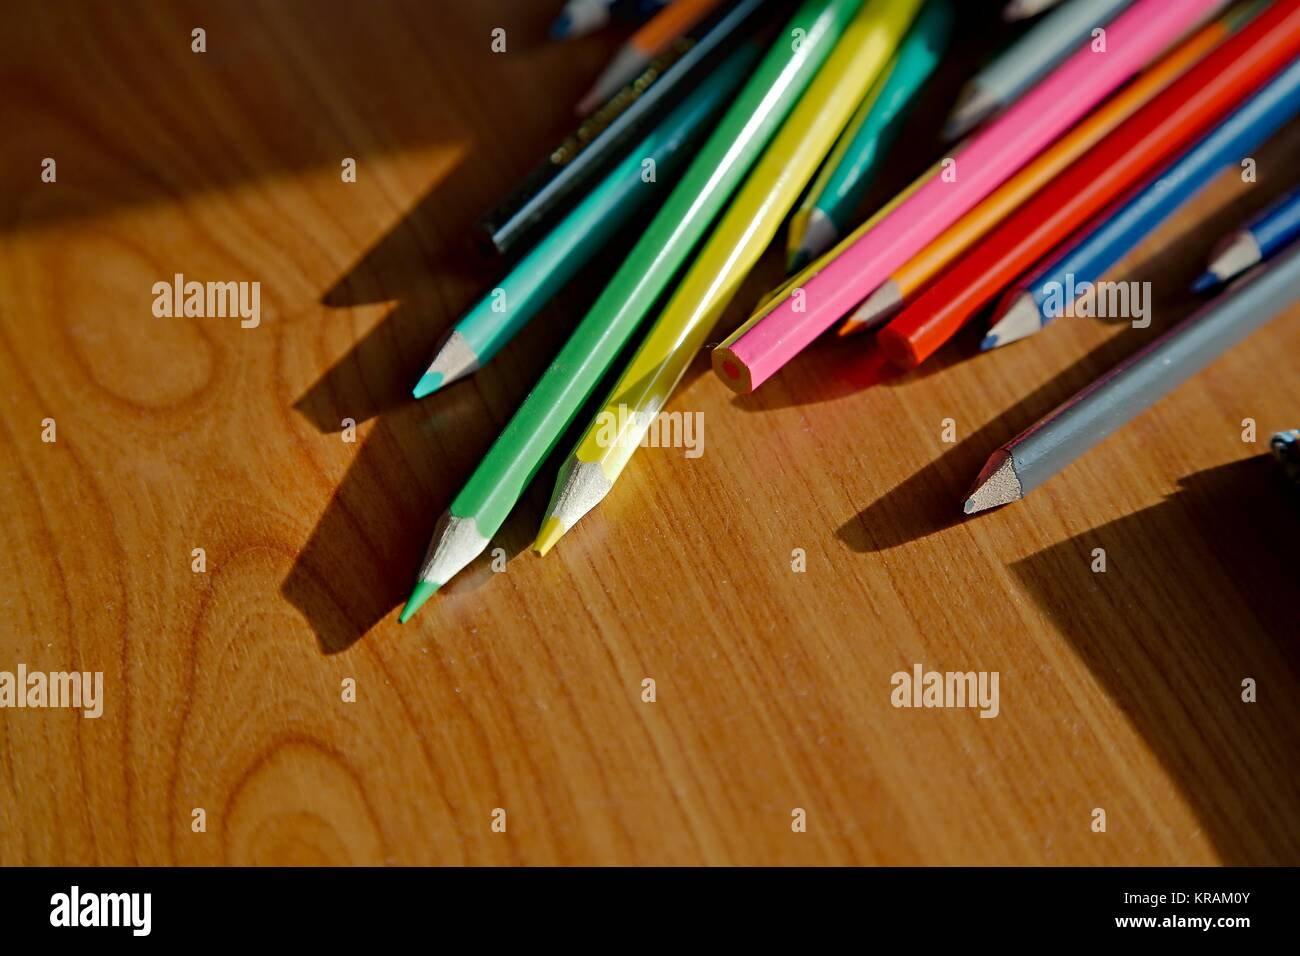 Color pencils on the desk - Stock Image